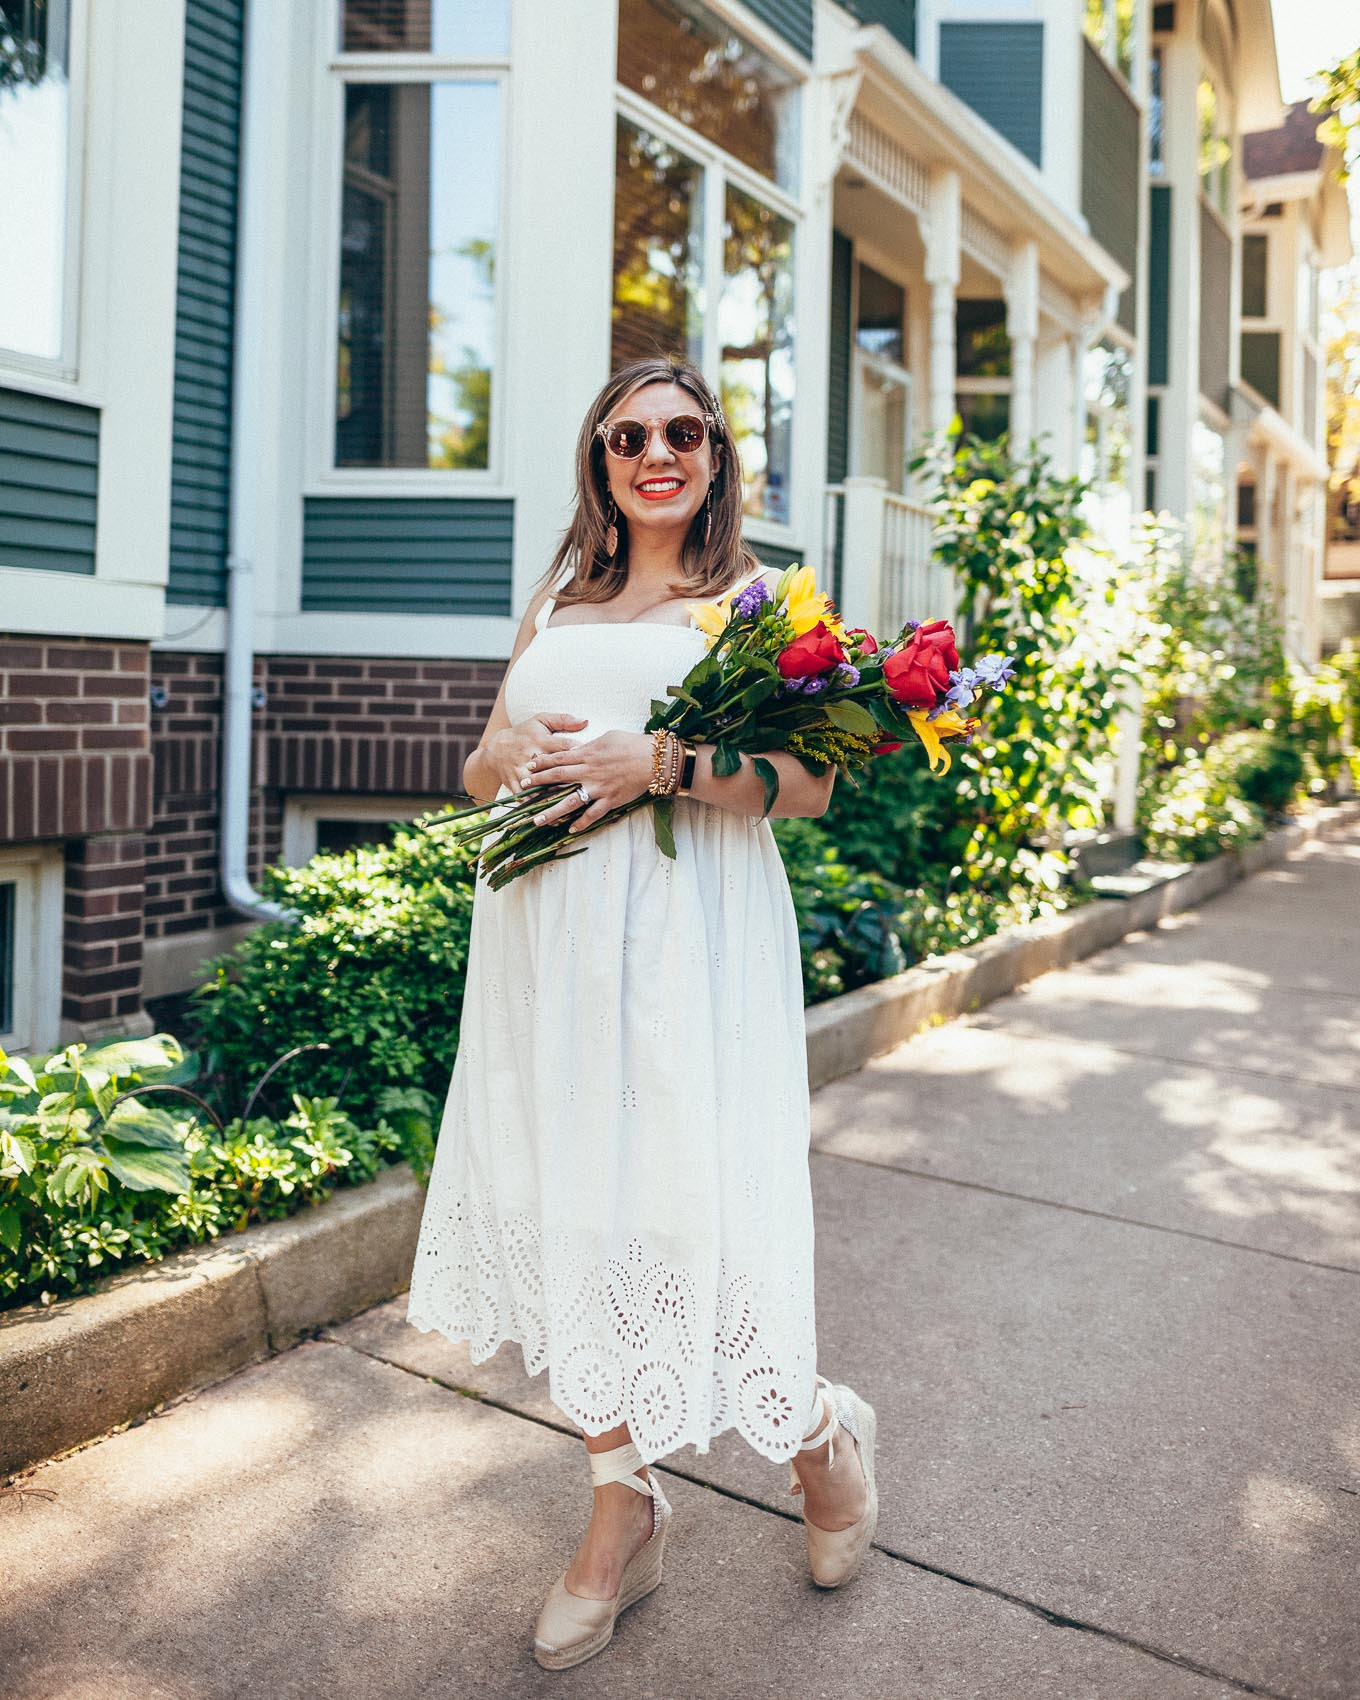 Little White Summer Dress & The Return of The Magnificent 8 by popular fashion blog, Glass of Glam: image of a woman holding a bouquet of flowers and walking down a street wearing an Embroidered Scallop Hem Maternity Dress, Shopbop Castaner Espadrilles, WODISON Women's Retro Mirrored Sunglasses, Sephora lipstick, Nordstrom Ettika Palm Leaf Drop Earrings, Bracelet Strap Replacement Wristband Magnetic Lock for Alta, Stella and Dot Renegade Cluster Bracelet, and Stella and Dot Nicholette Stretch Bracelet.